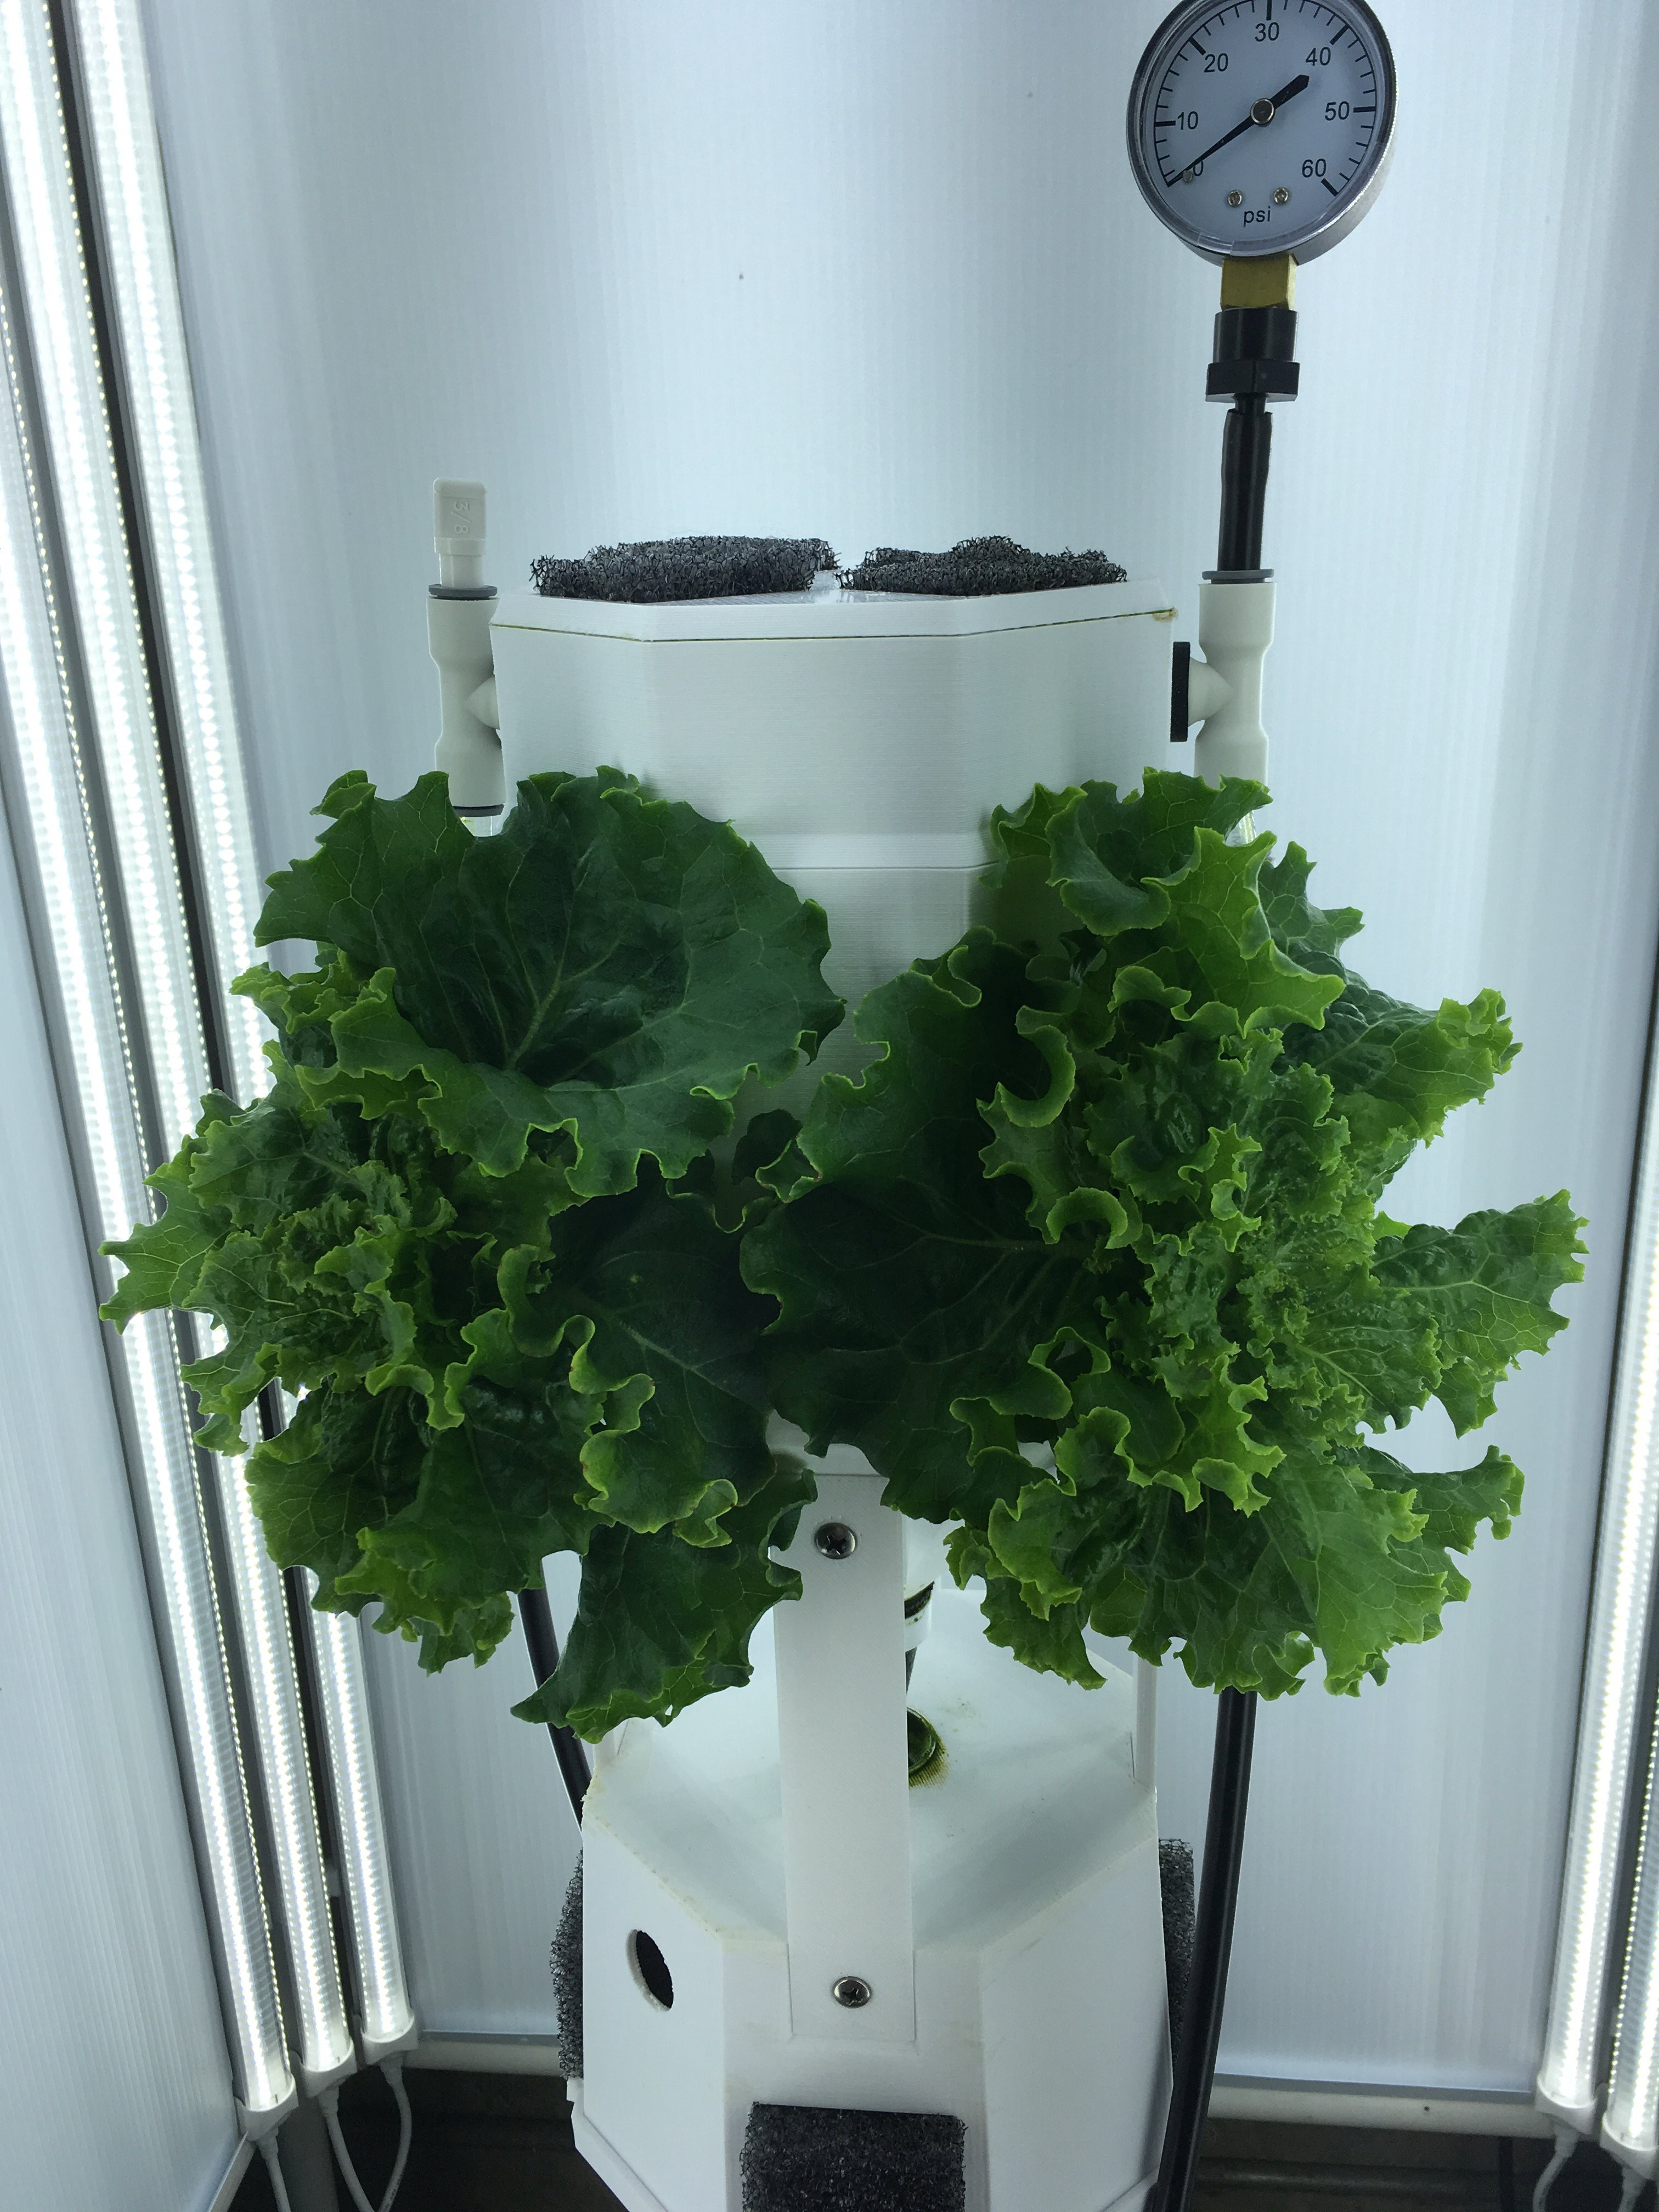 Grow Your Own Vertical Farm in This DIY, Raspberry Pi